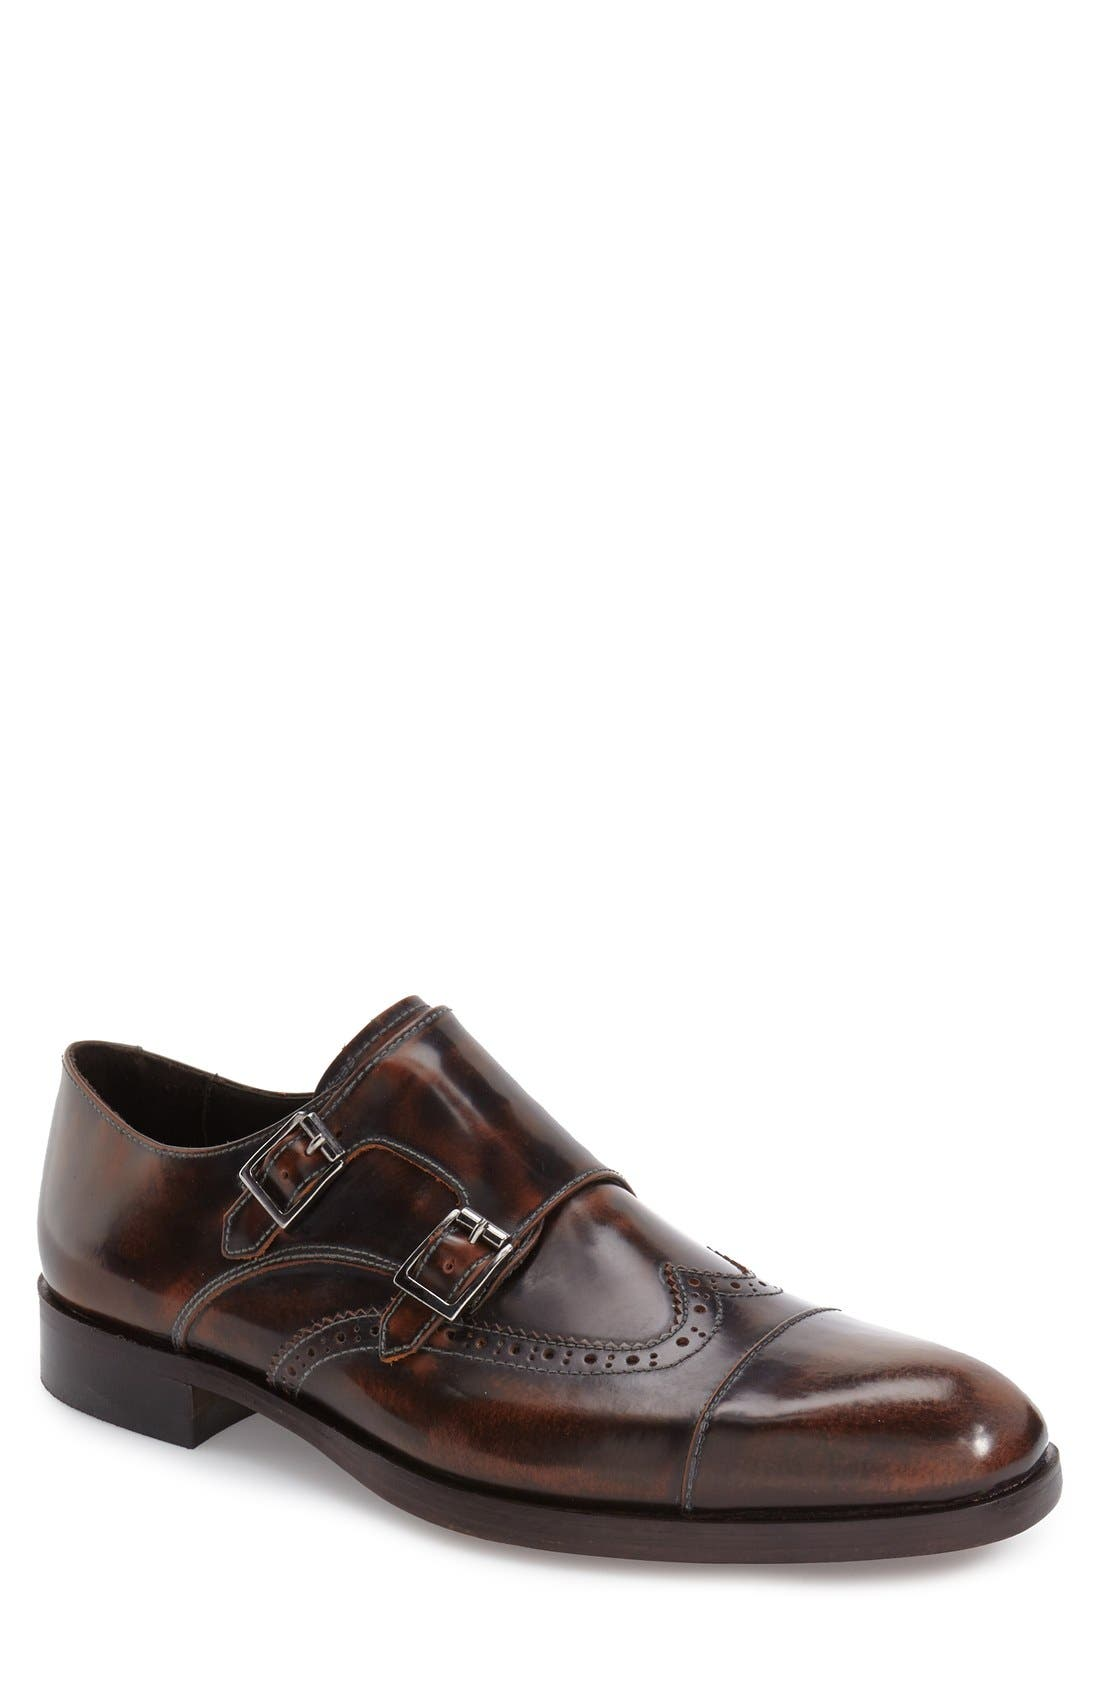 Alternate Image 1 Selected - Donald J Pliner 'Ziggy' Double Monk Strap Shoe (Men)